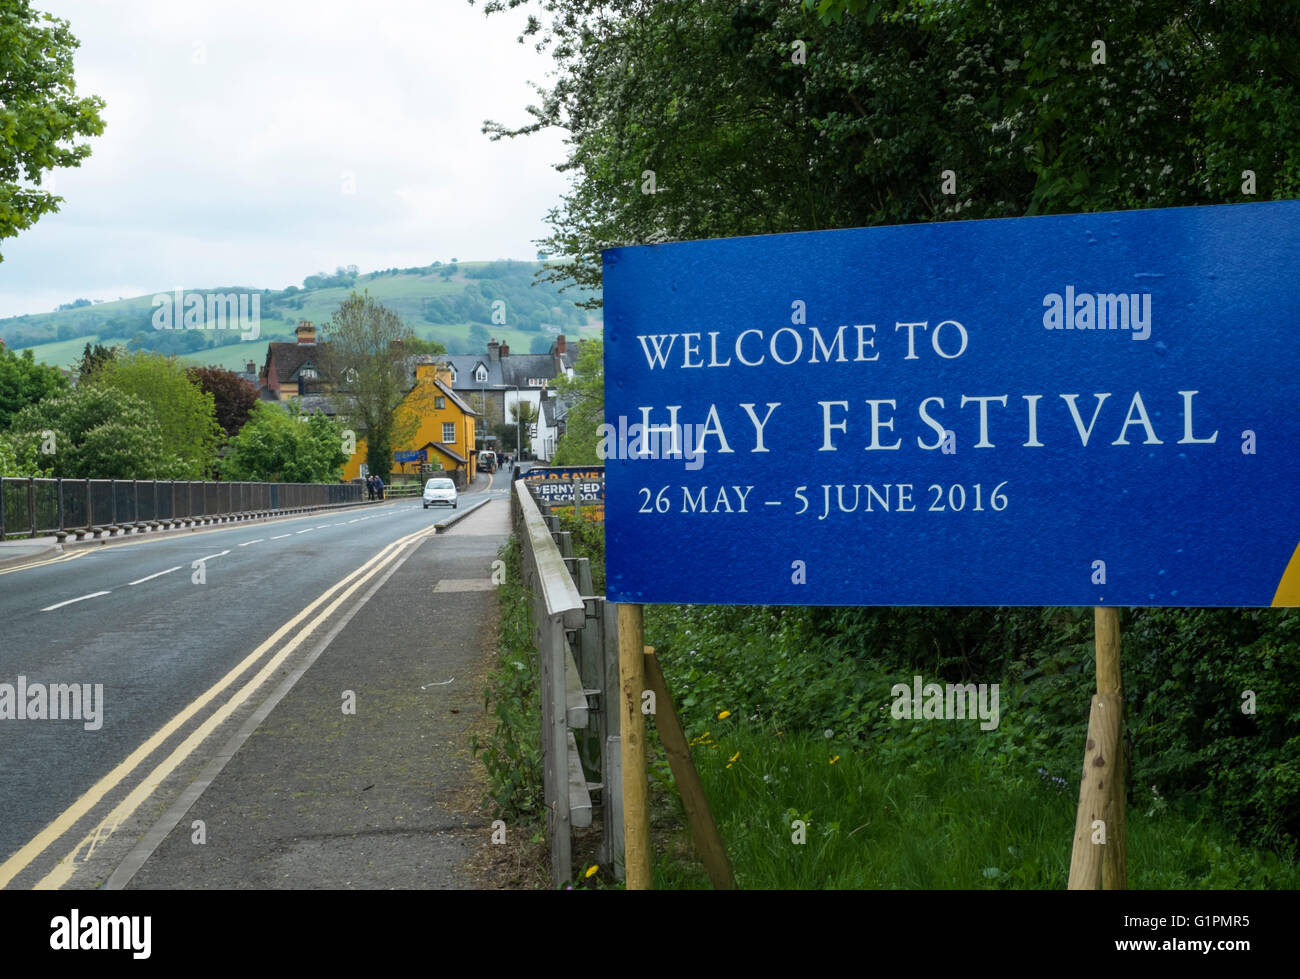 Hay-on-Wye a small town famous for book shops and a literary festival in Powys Wales UK. Welcome to Hay Festival - Stock Image